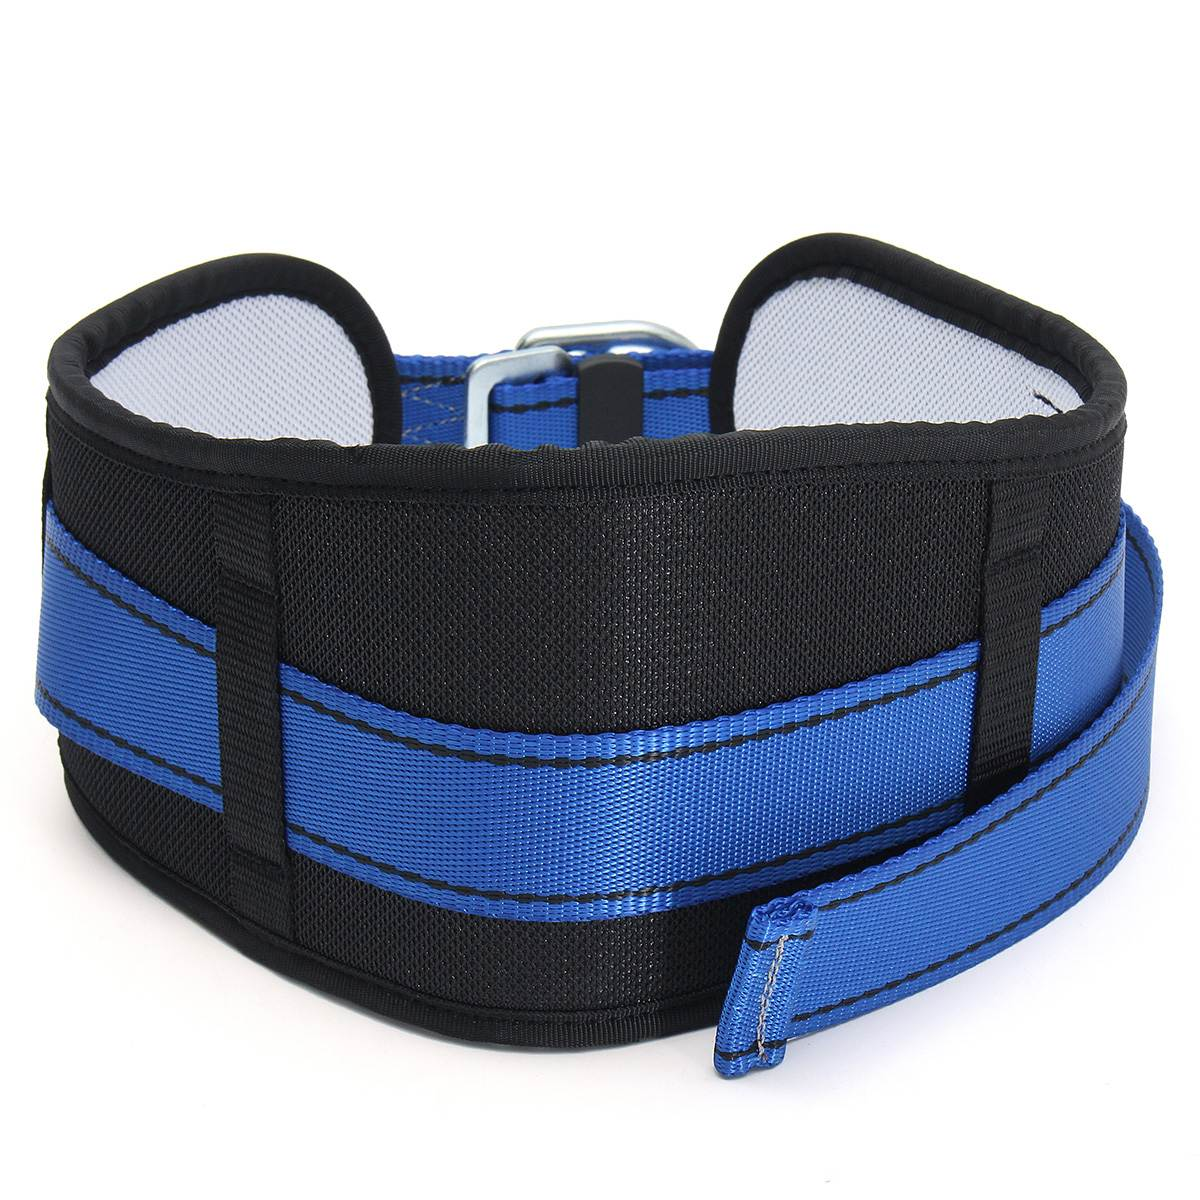 NEW Safurance Safety Belt Waist Support Belt Rock Rappelling Safety Equipment with  climbing harnesses Workplace Safety 1 pcs 150mm 6inch stroke heavy duty dc 12v 900n load linear actuator multi function 10 motor with 1 steel mounting brackets